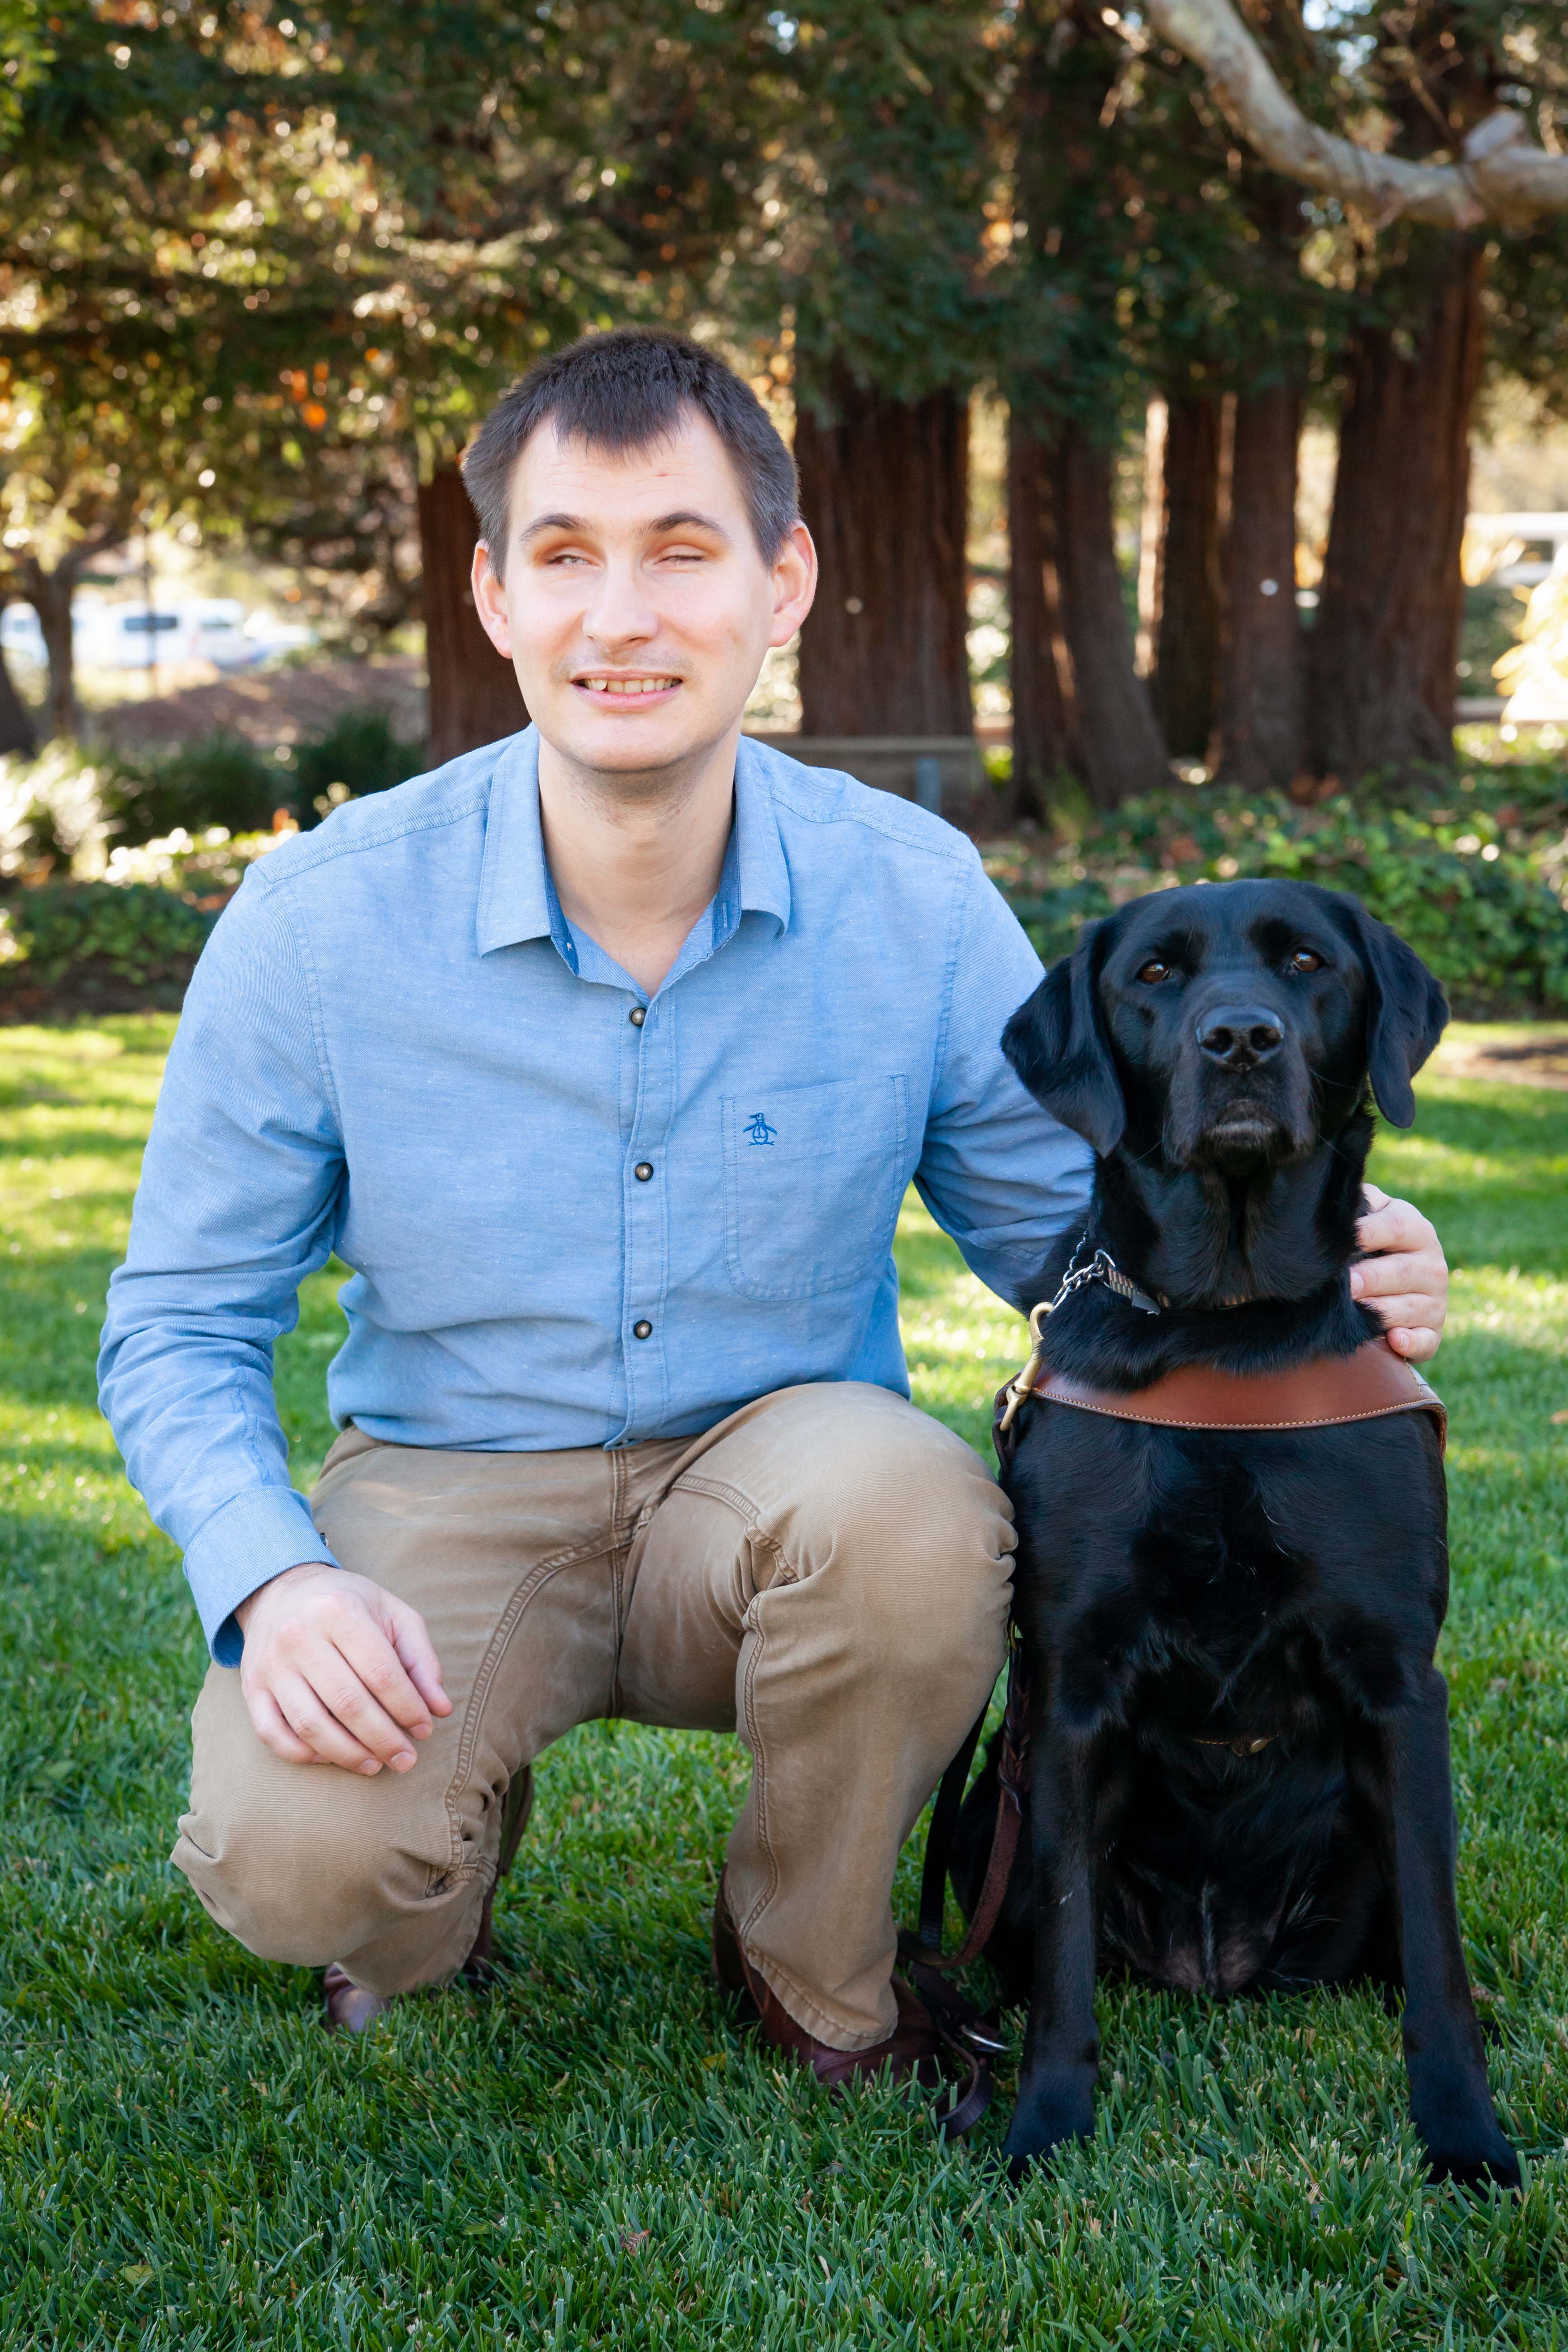 Jake Koch from Guide Dogs for the Blind and his guide dog, Forli. Jake and Forli are standing in a grassy area with trees in the background. Jake is wearing a blue button down shirt and brown pants and is squatting next to Forli, who is a black labrador retriever.